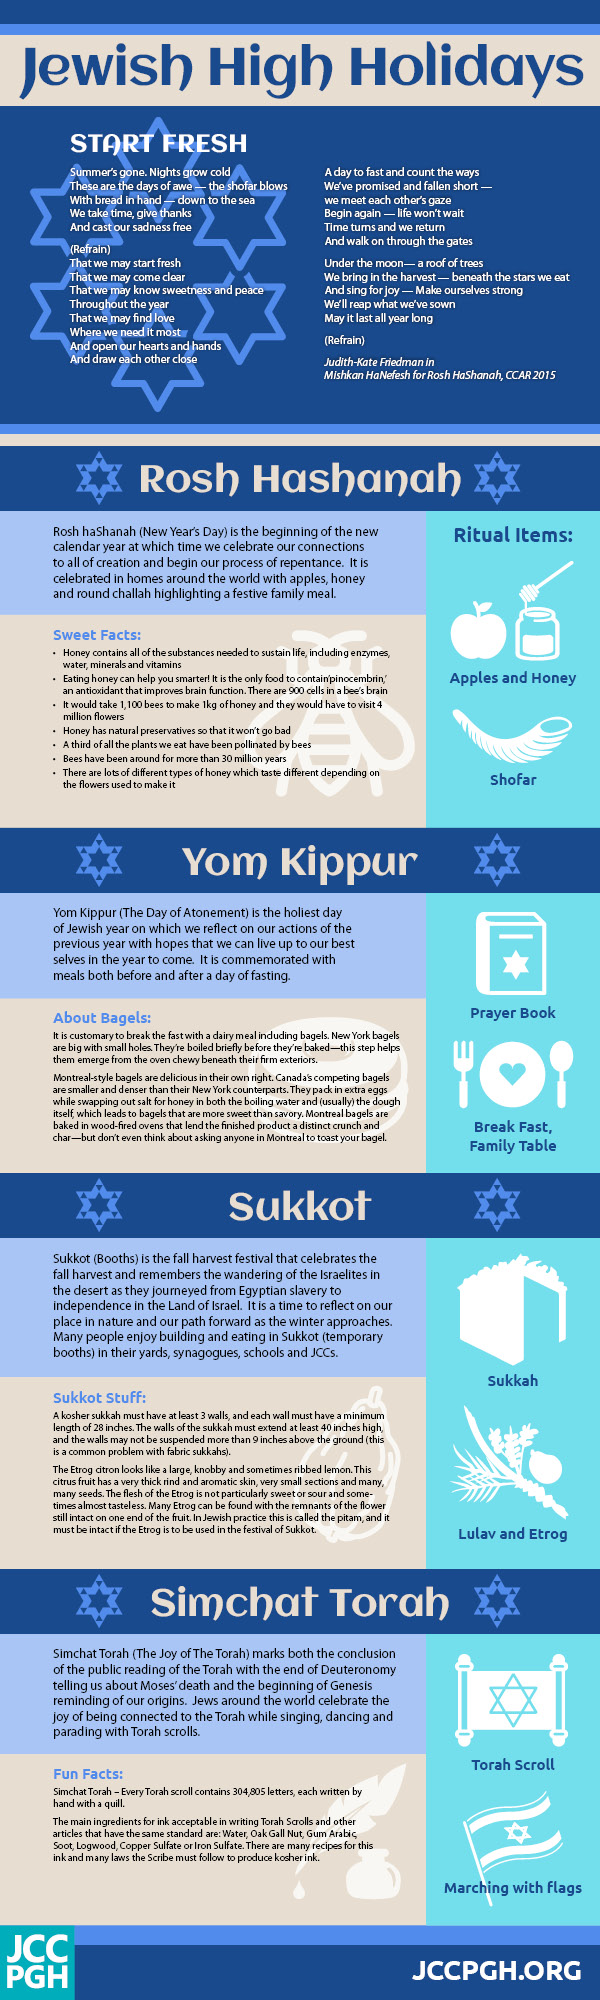 Fun Facts about the Jewish High Holidays - JCC Pittsburgh